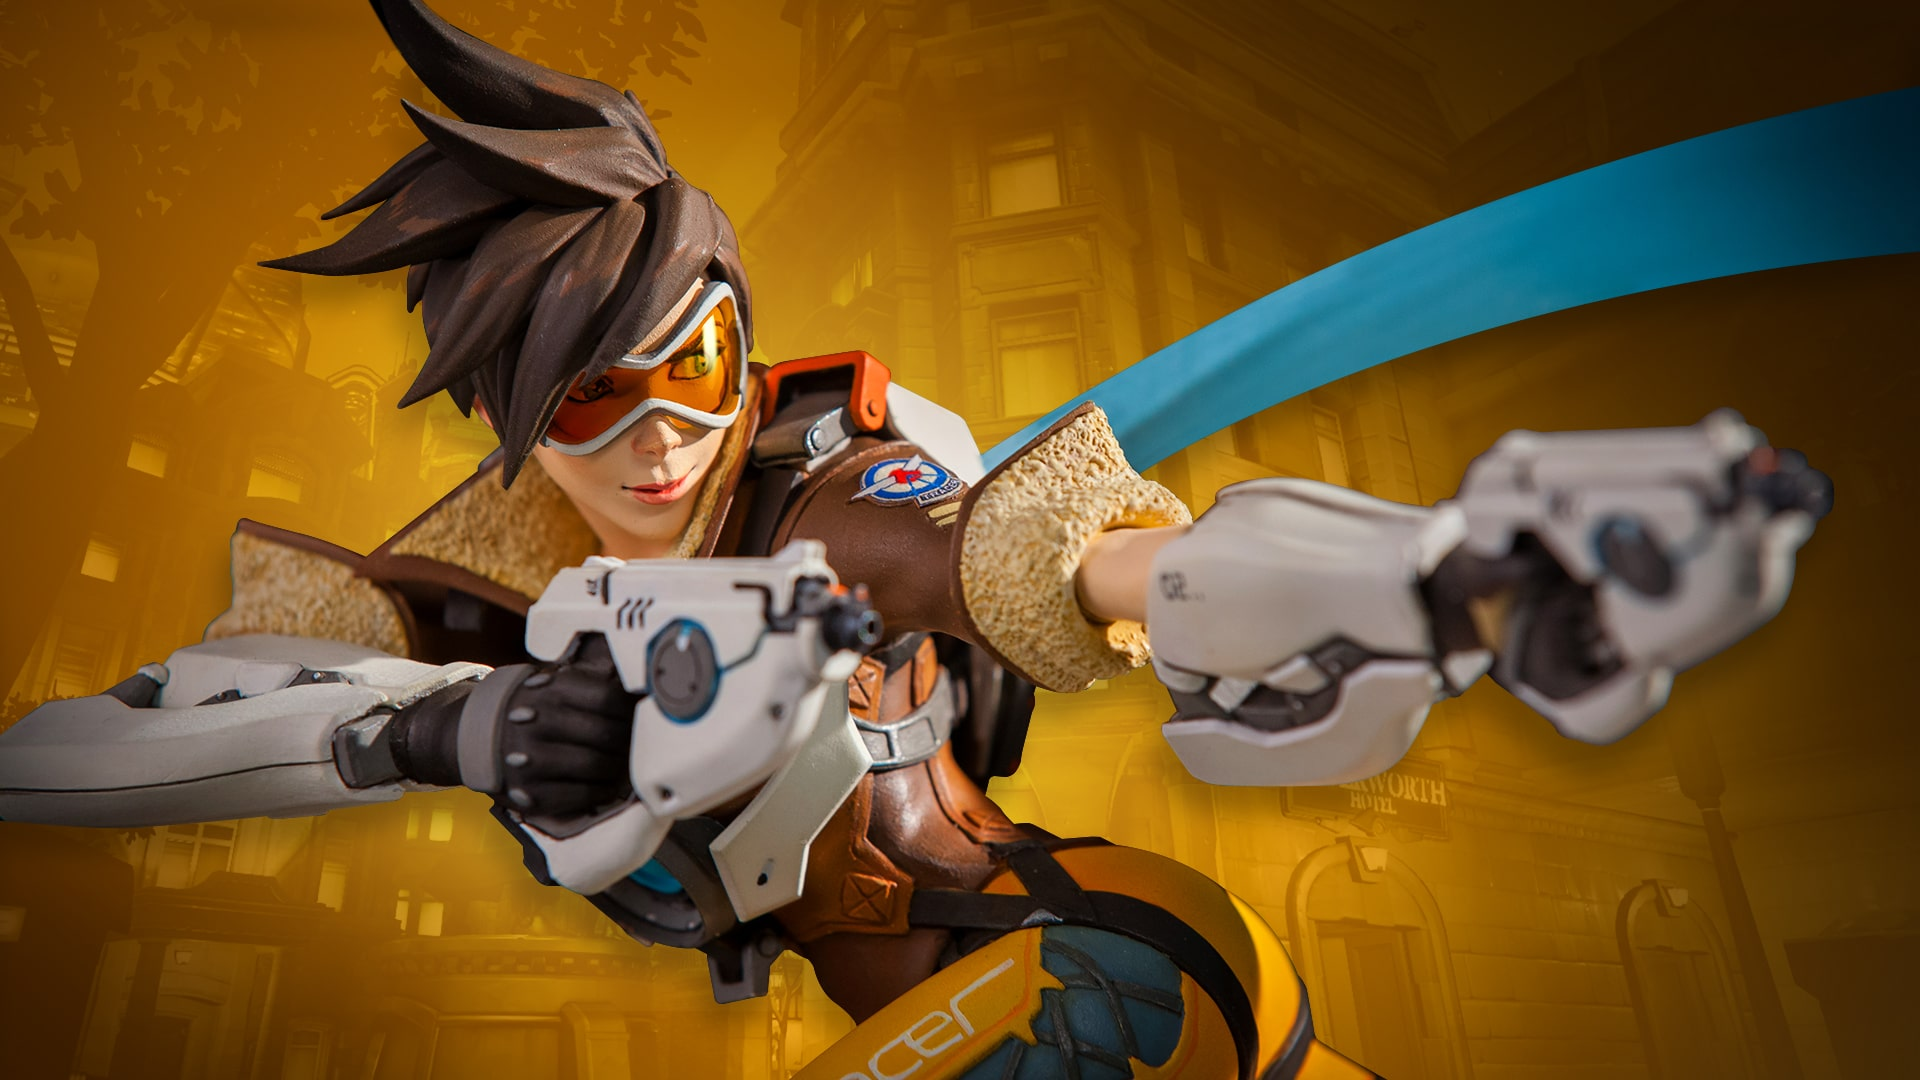 tracer awesome